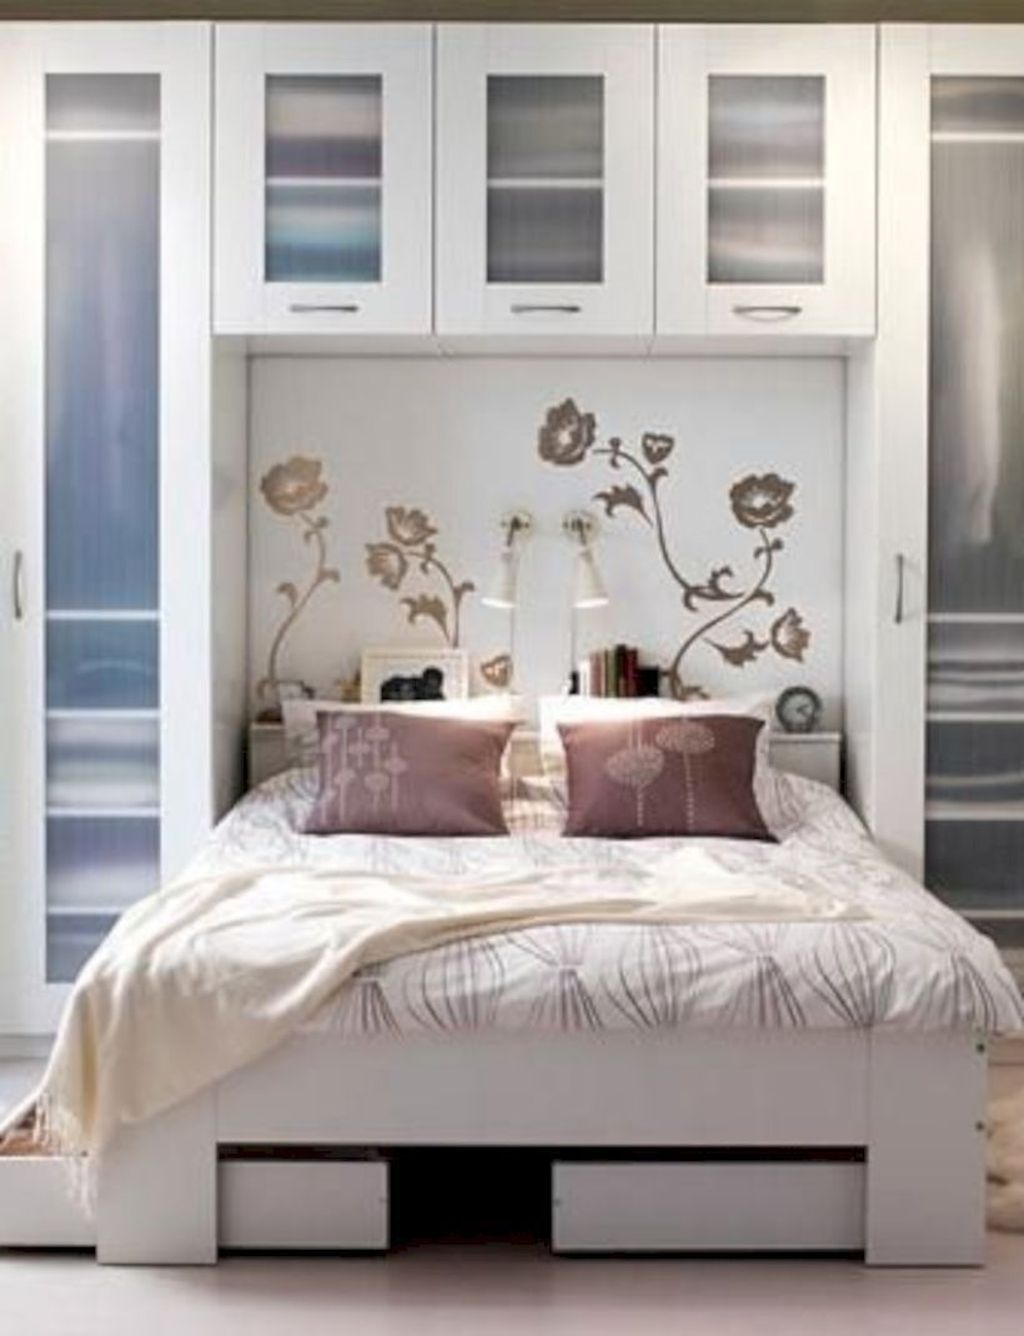 Bedroom Design Ideas 8 Ways To Create The Ultimate Bed Surround